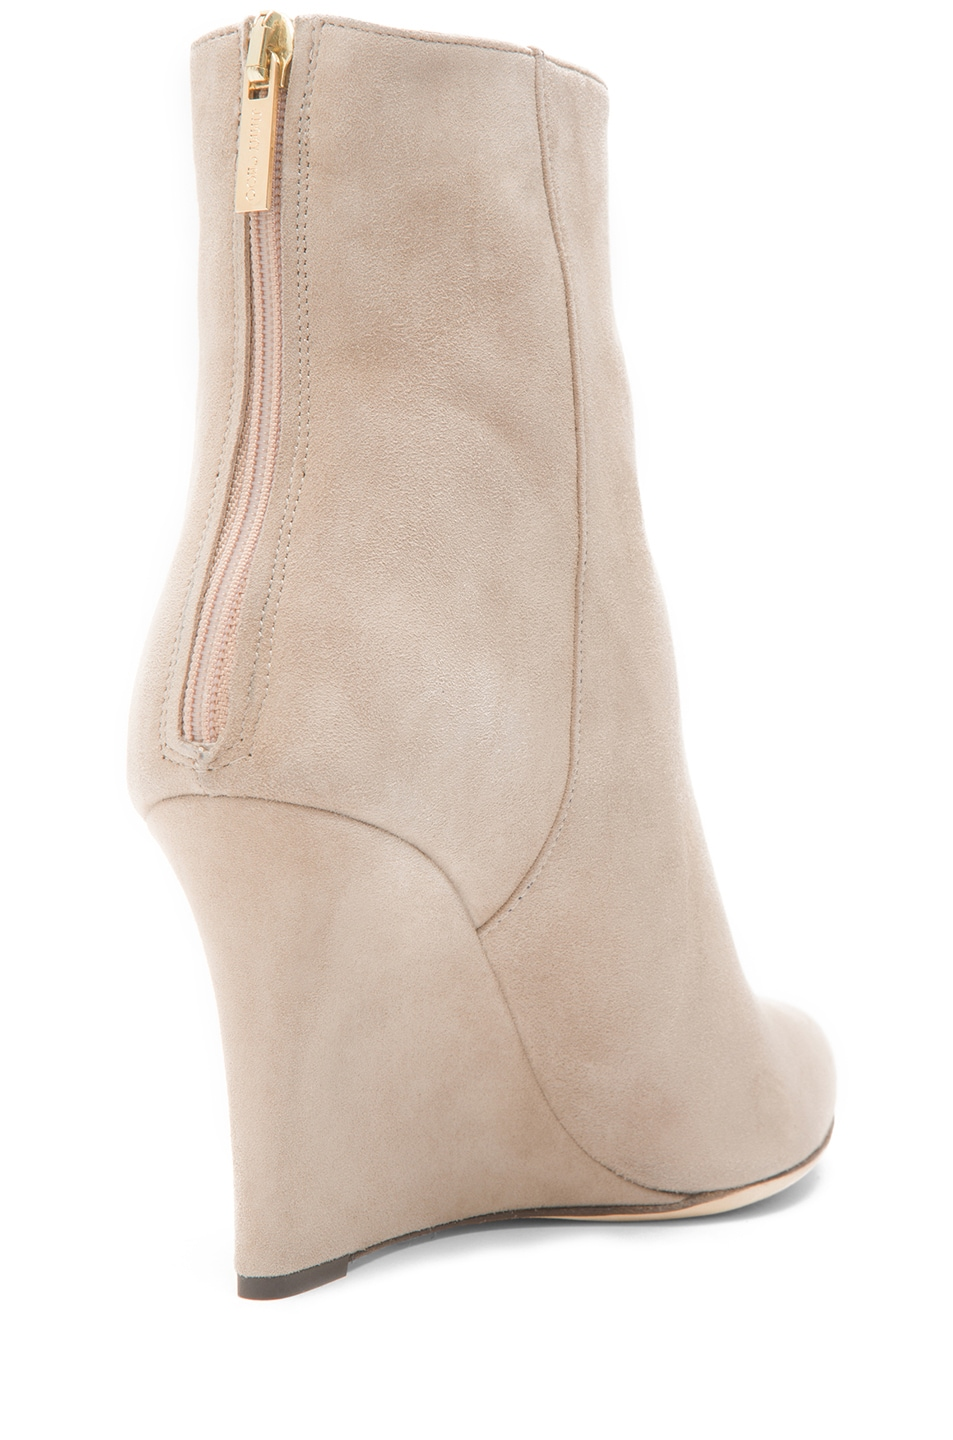 Image 3 of Jimmy Choo Mayor Suede 85mm Wedge Ankle Boots in Latte